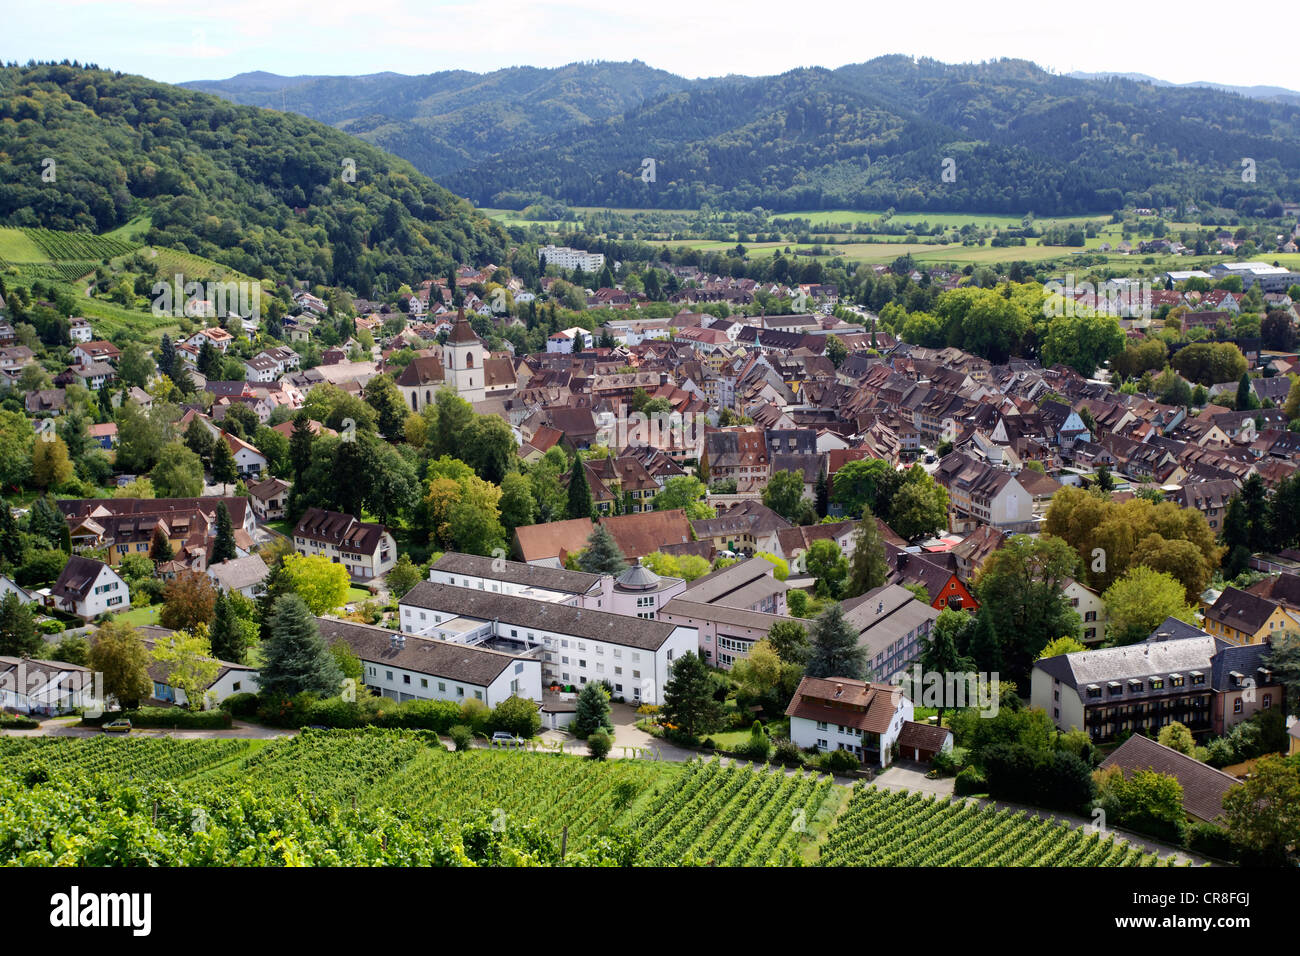 View of the medieval town centre of Staufen im Breisgau, southern Black Forest mountain range, Baden-Wuerttemberg - Stock Image